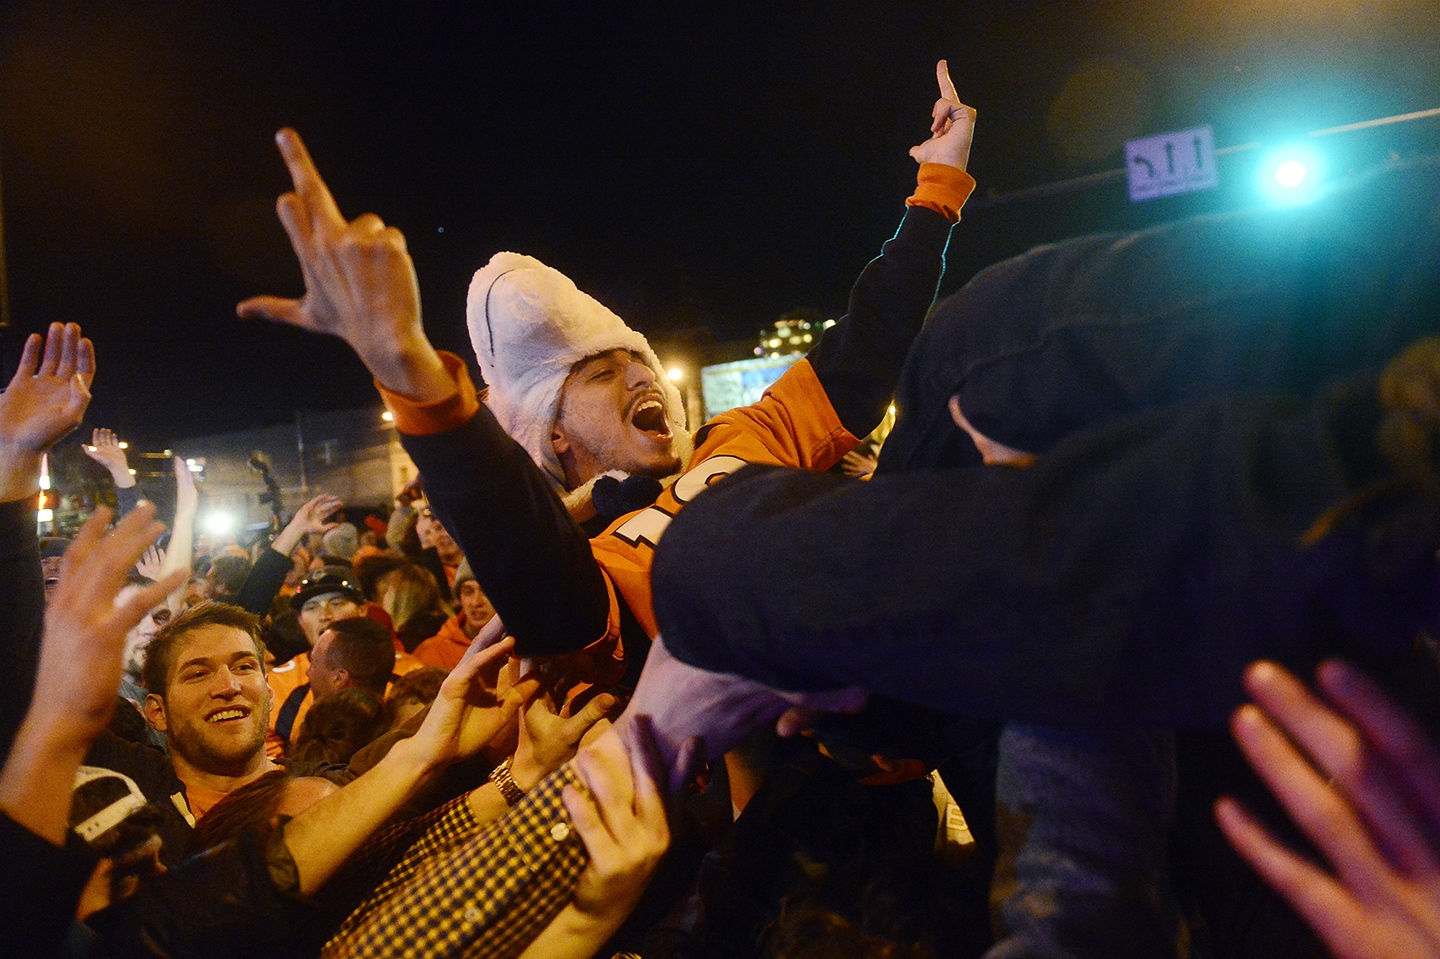 Denver Celebrates Broncos' Super Bowl Win A fan crowd surfs at the intersection of 20th St. and Market St. on February 7, 2016 in Denver, Colorado. Fans celebrated in the street of Denver after the Denver Broncos defeated the Carolina Panthers 24-10 to win Super Bowl 50. (Photo by Brent Lewis/The Denver Post)